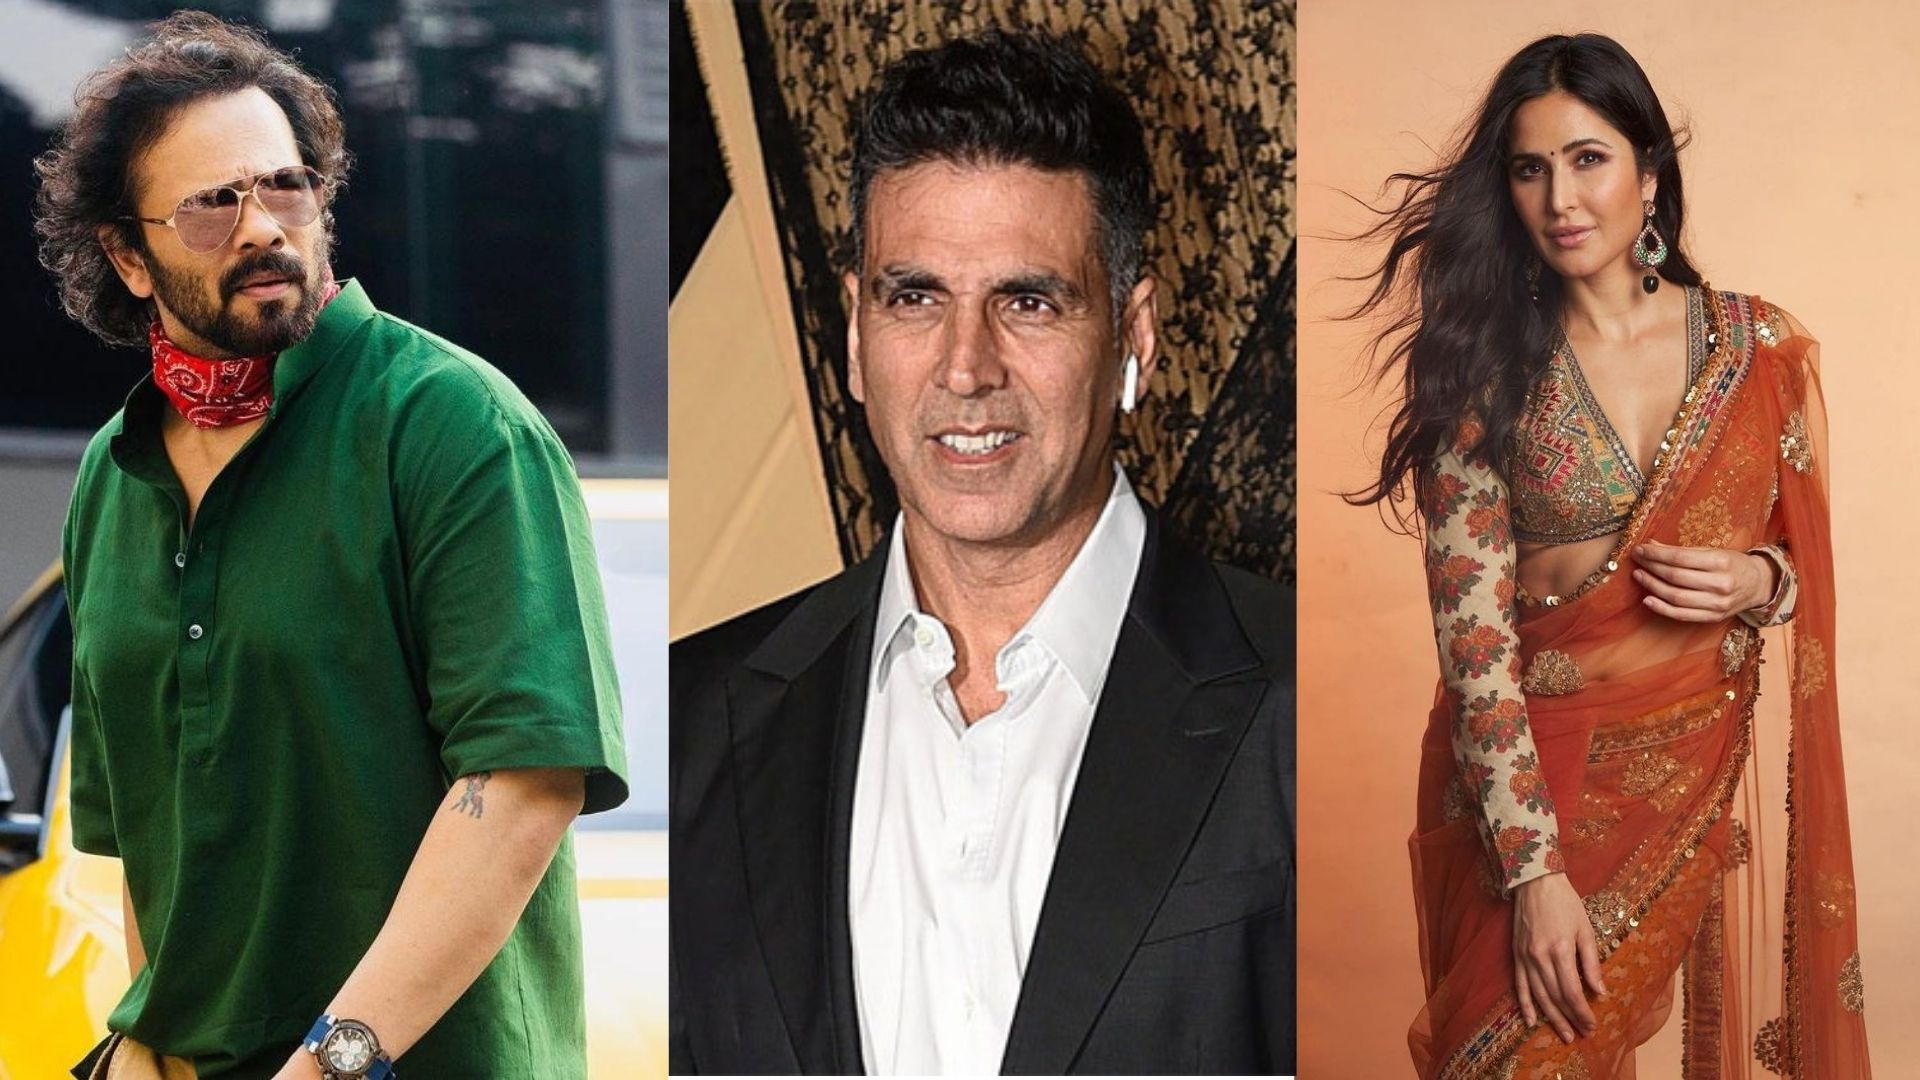 Sooryavanshi: Akshay Kumar, Katrina Kaif, And Rohit Shetty To Promote The Film During A Crucial T20 Match – Know More